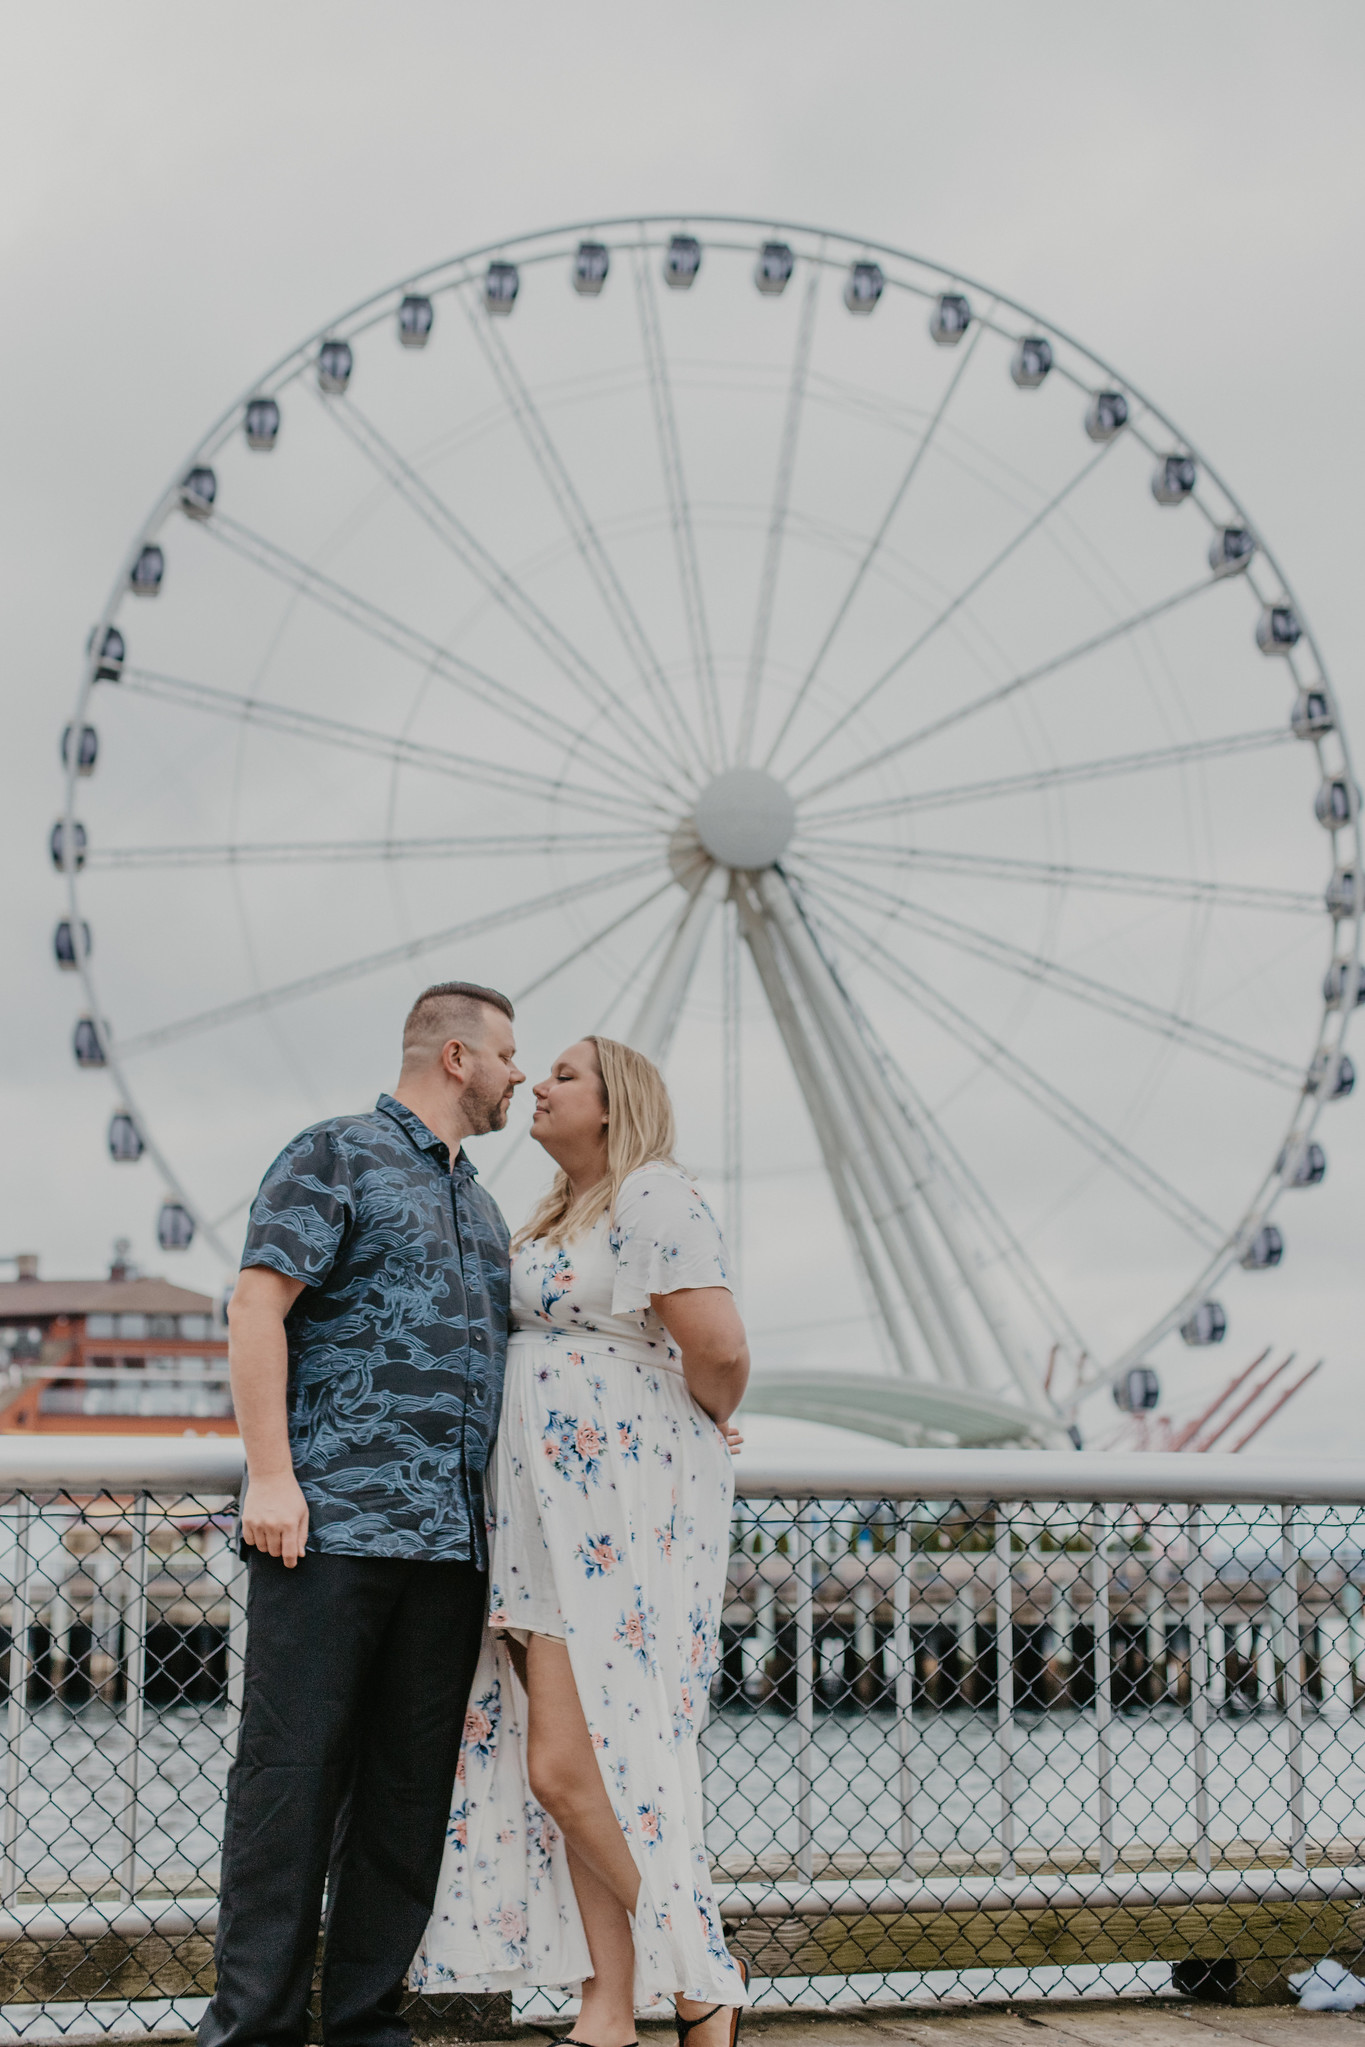 Cam + Avery || Seattle Engagement Shoot - June 2019 || Seattle, WA